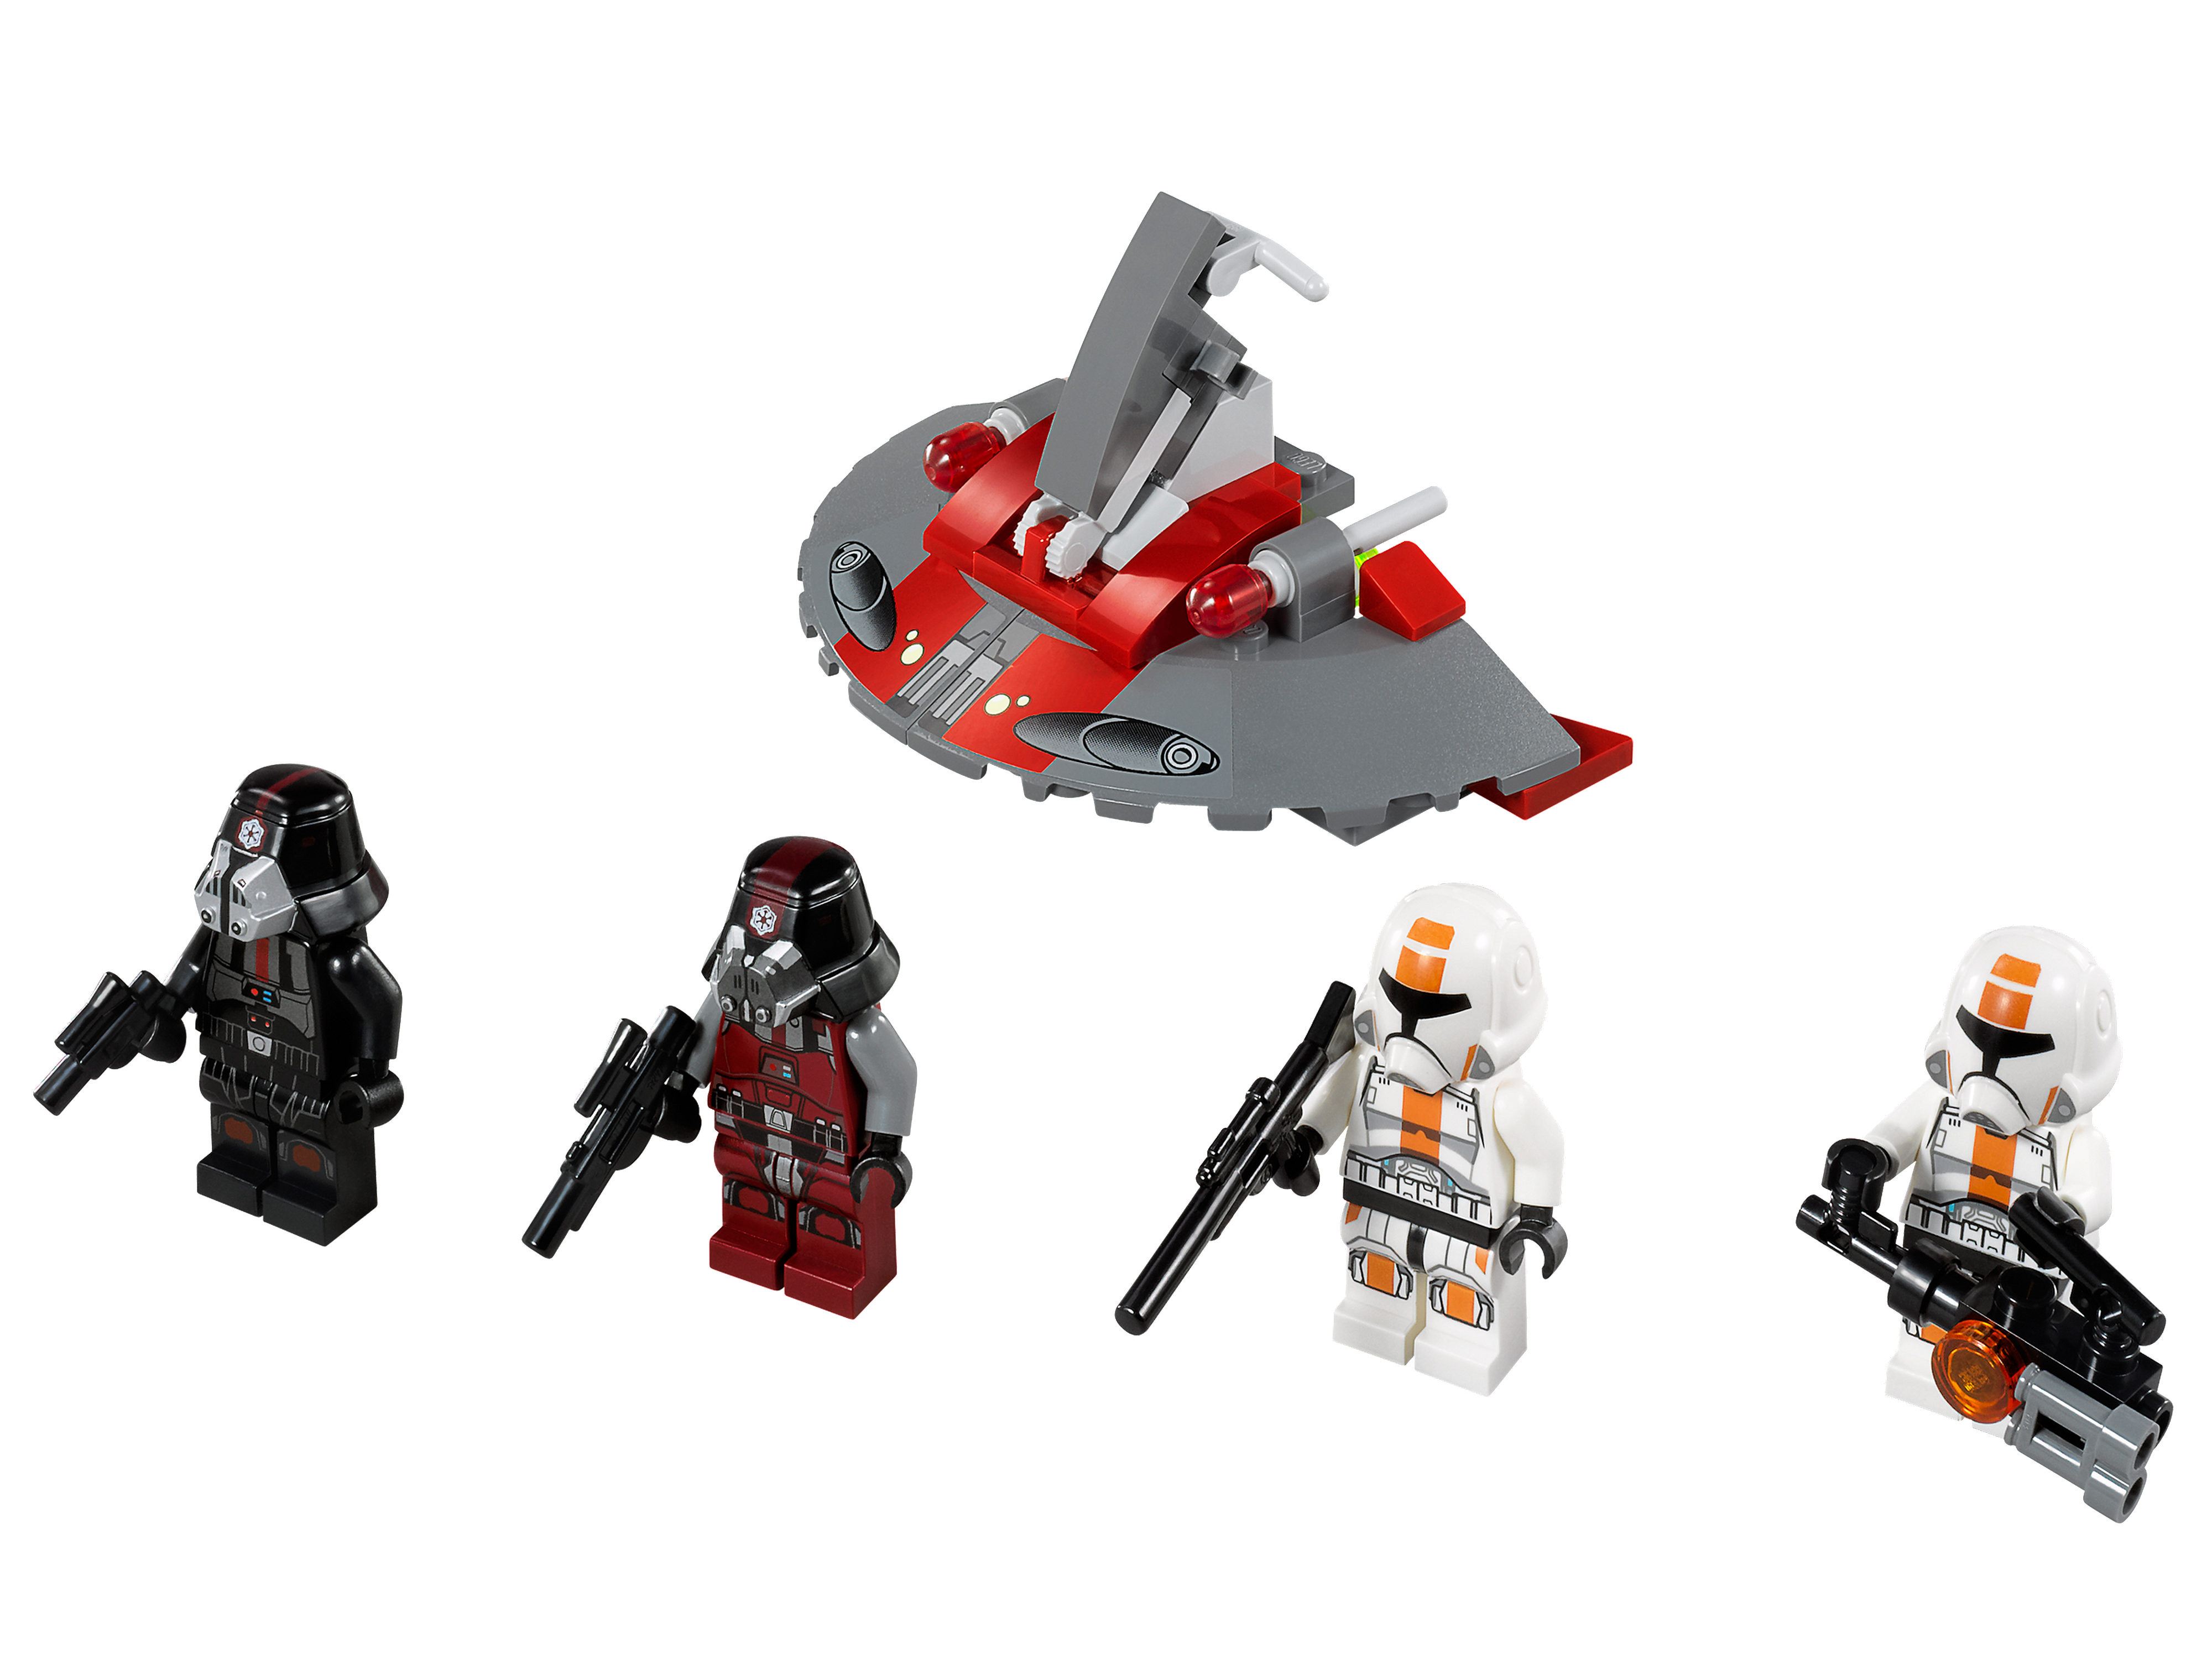 Lego 75001 Republic Troopers vs. Sith Troopers - Alternate View 1